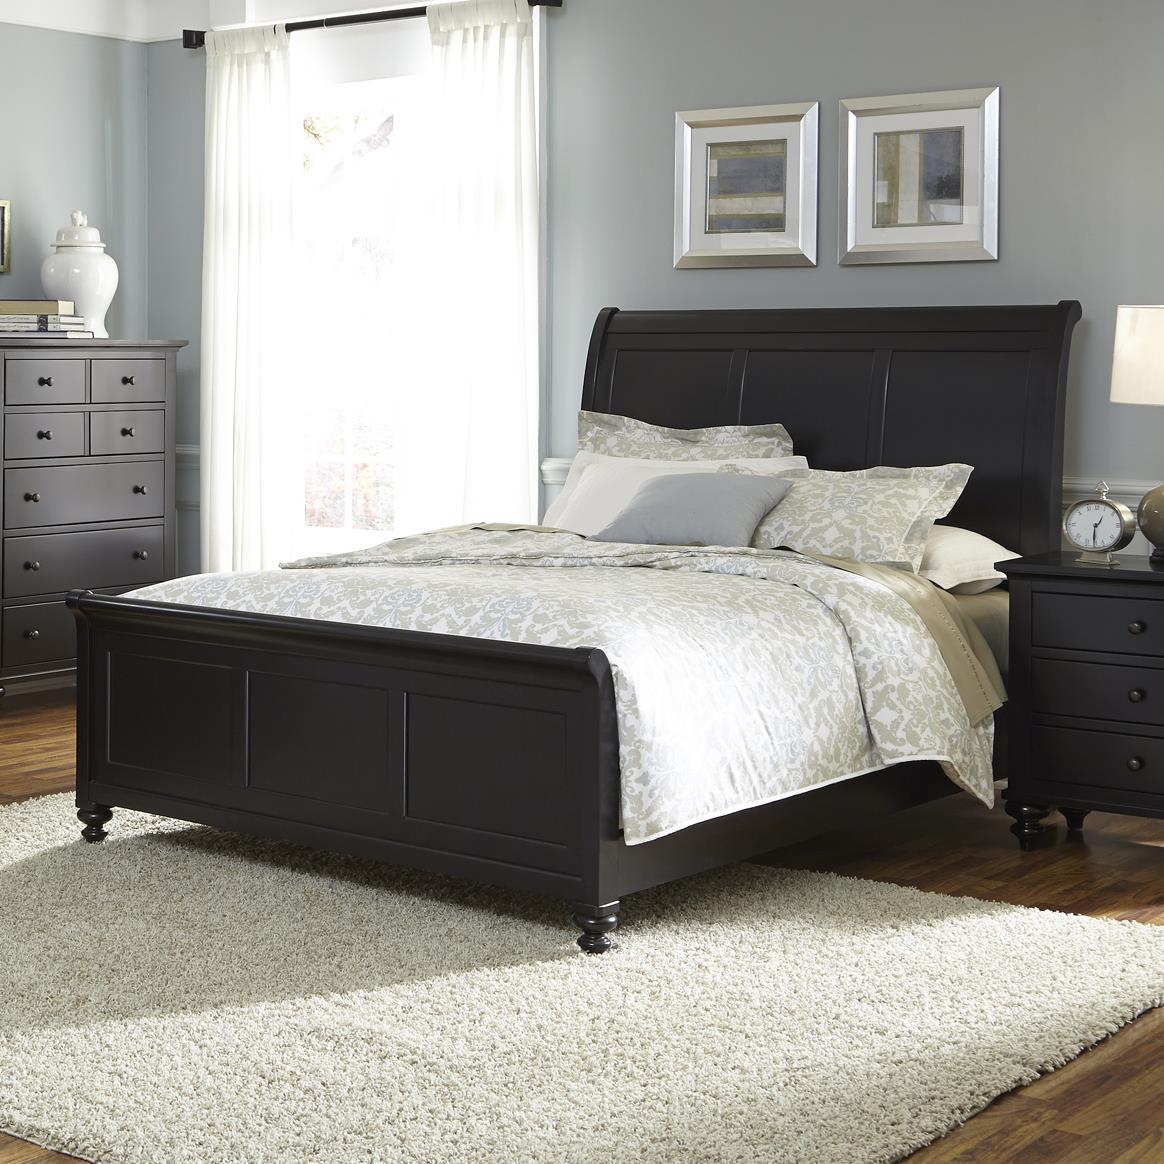 Liberty Furniture Hamilton III King Sleigh Bed - Item Number: 441-BR-KSL